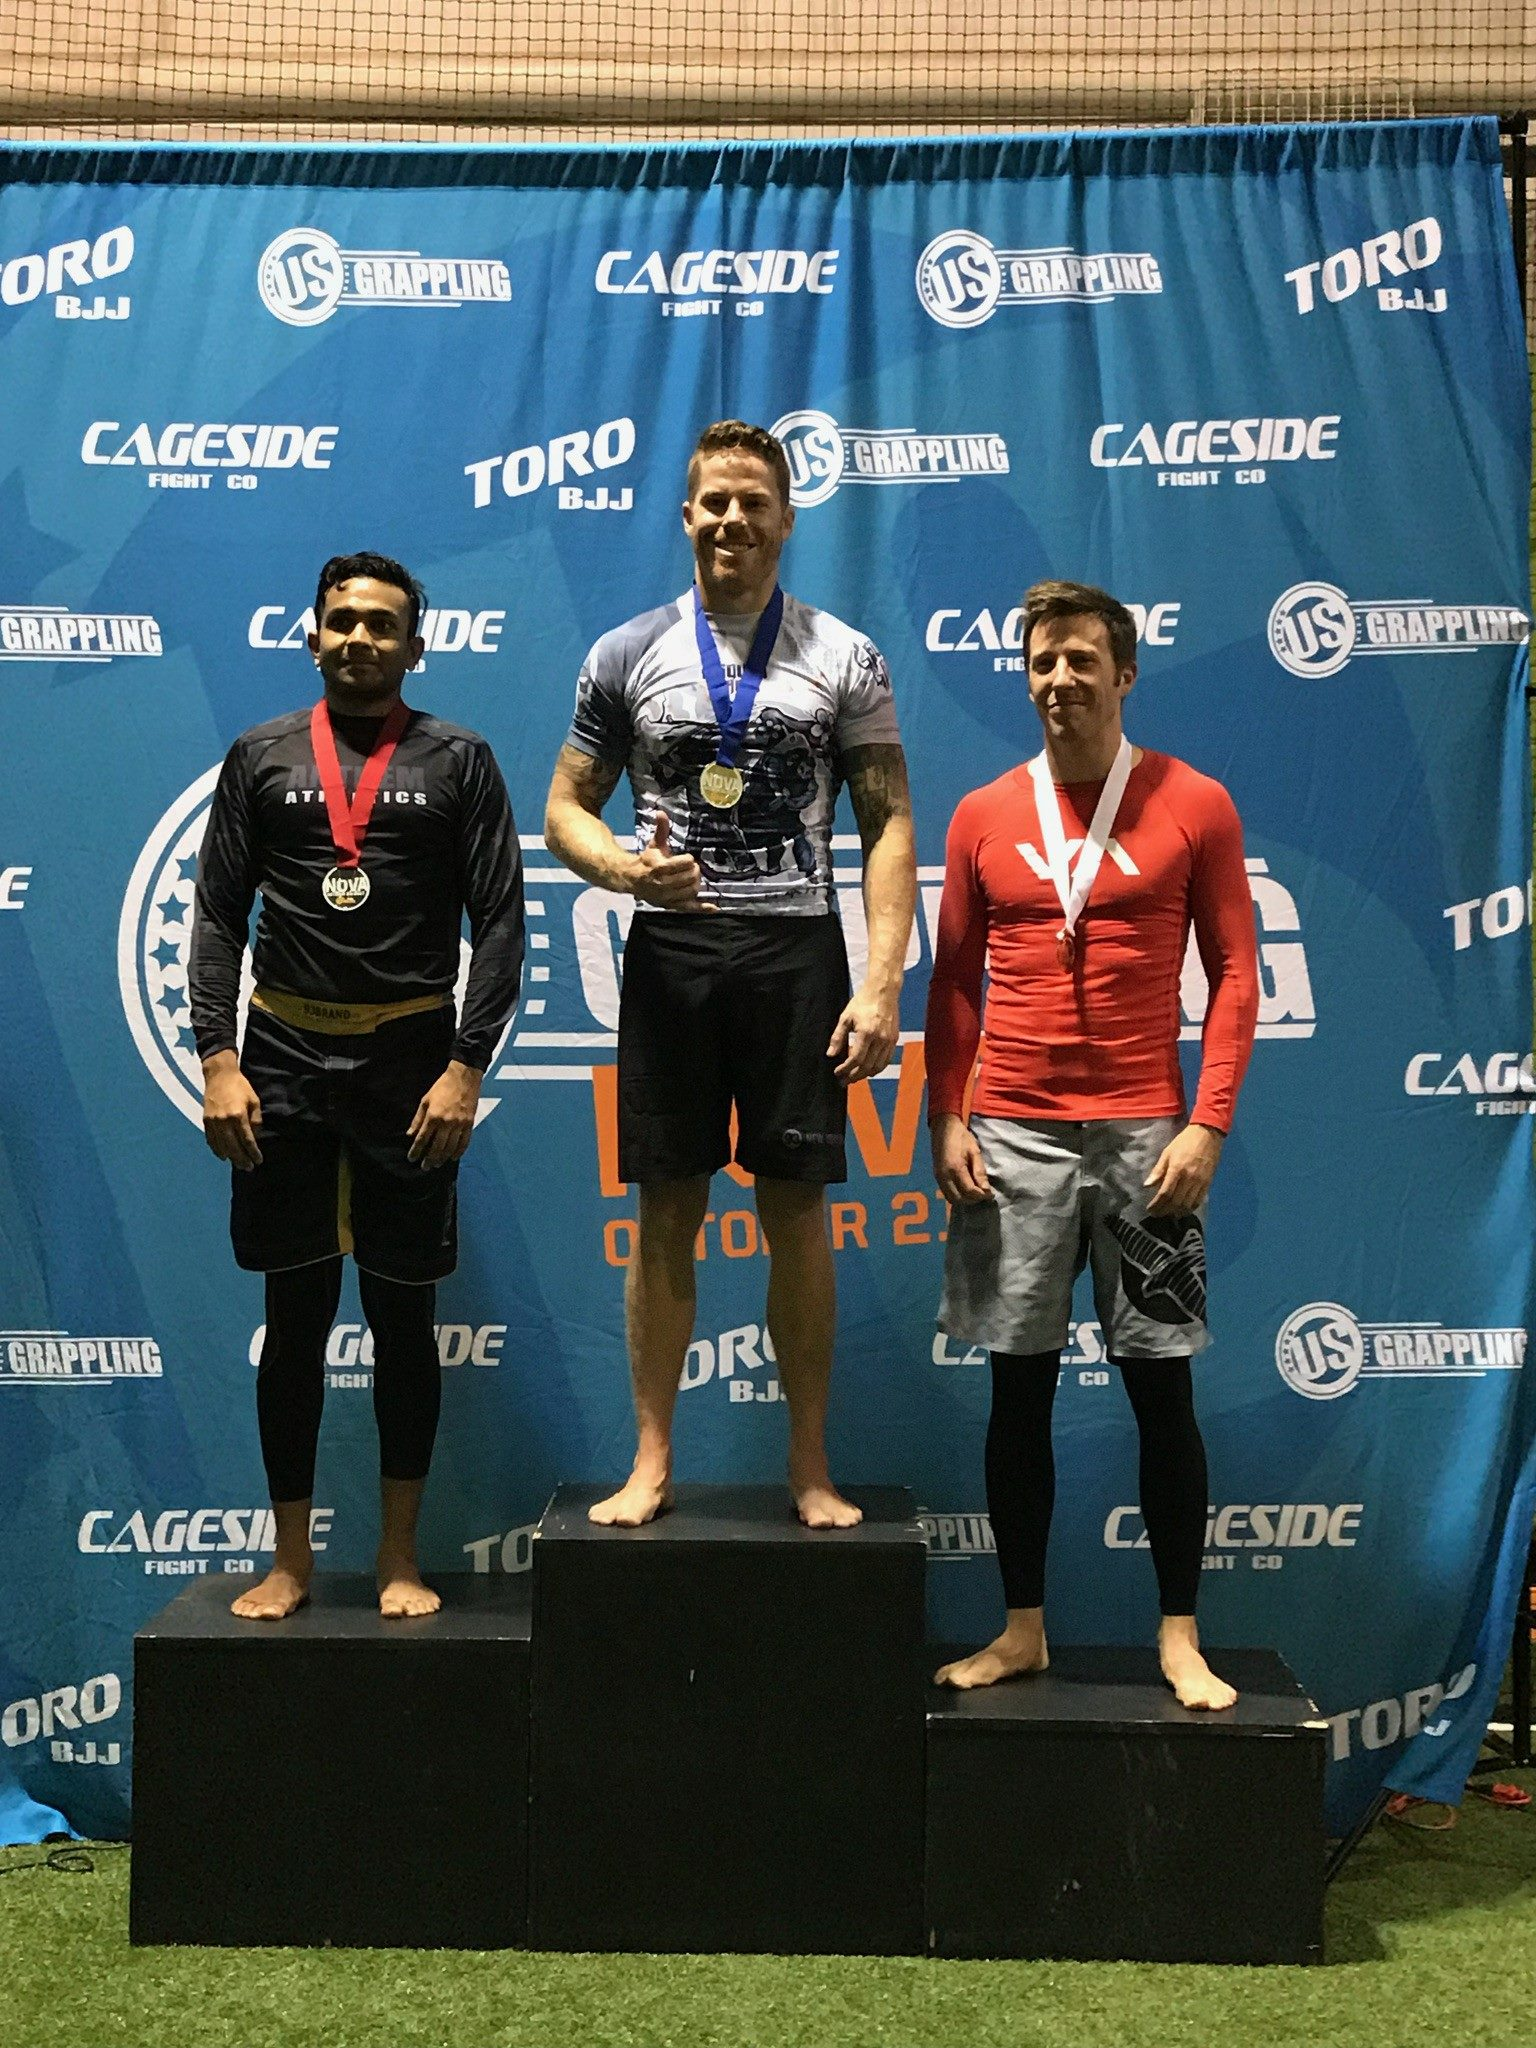 Chris, Pictured above on top of the podium at U.S. Grappling.